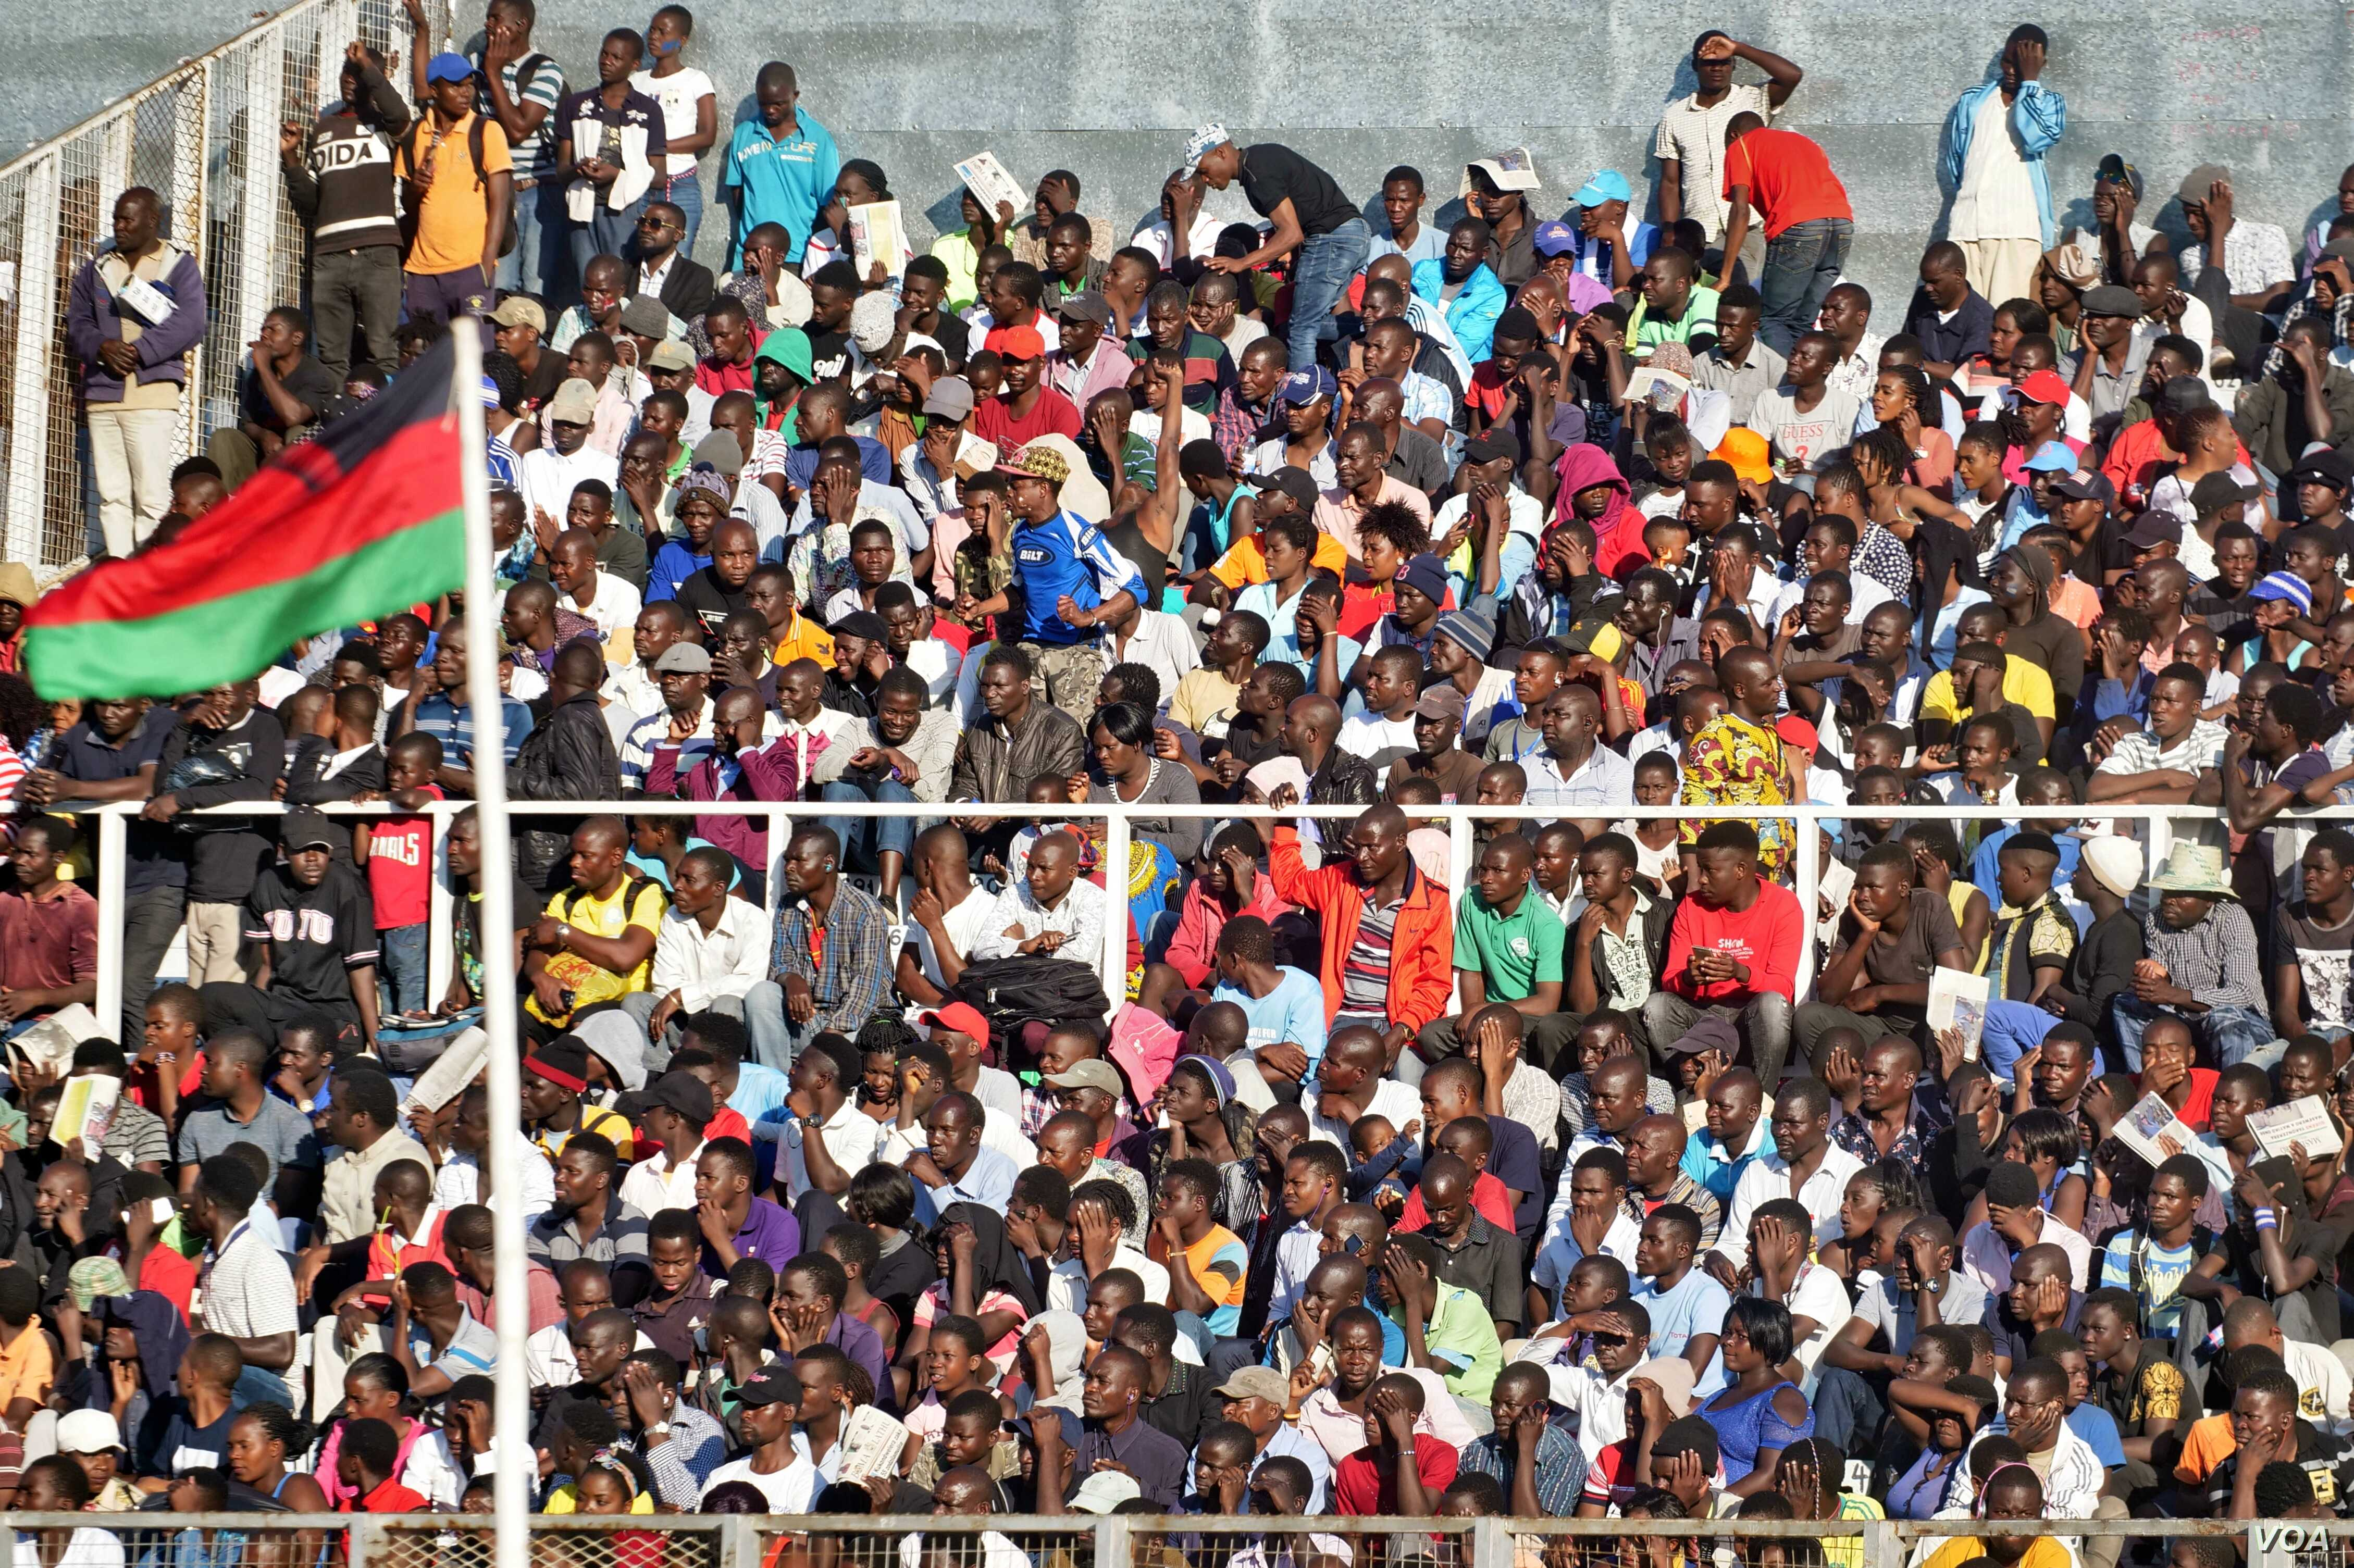 Thousands of Malawians attended the Independence Day Celebration at Kamuzu Stadium in Blantyre, July 6, 2019.